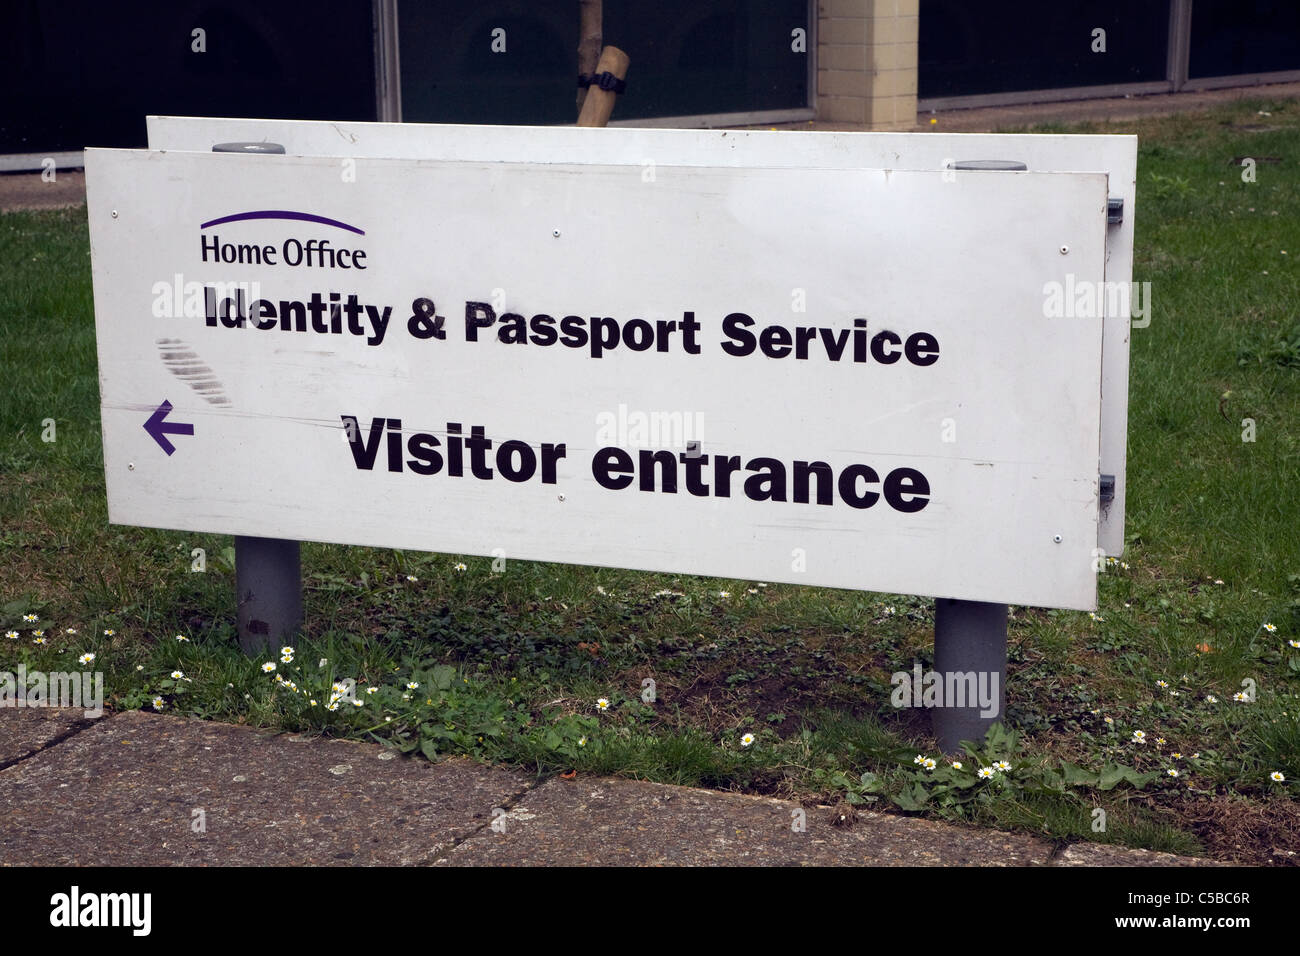 Home Office Identity and passport service visitor entrance sign ...